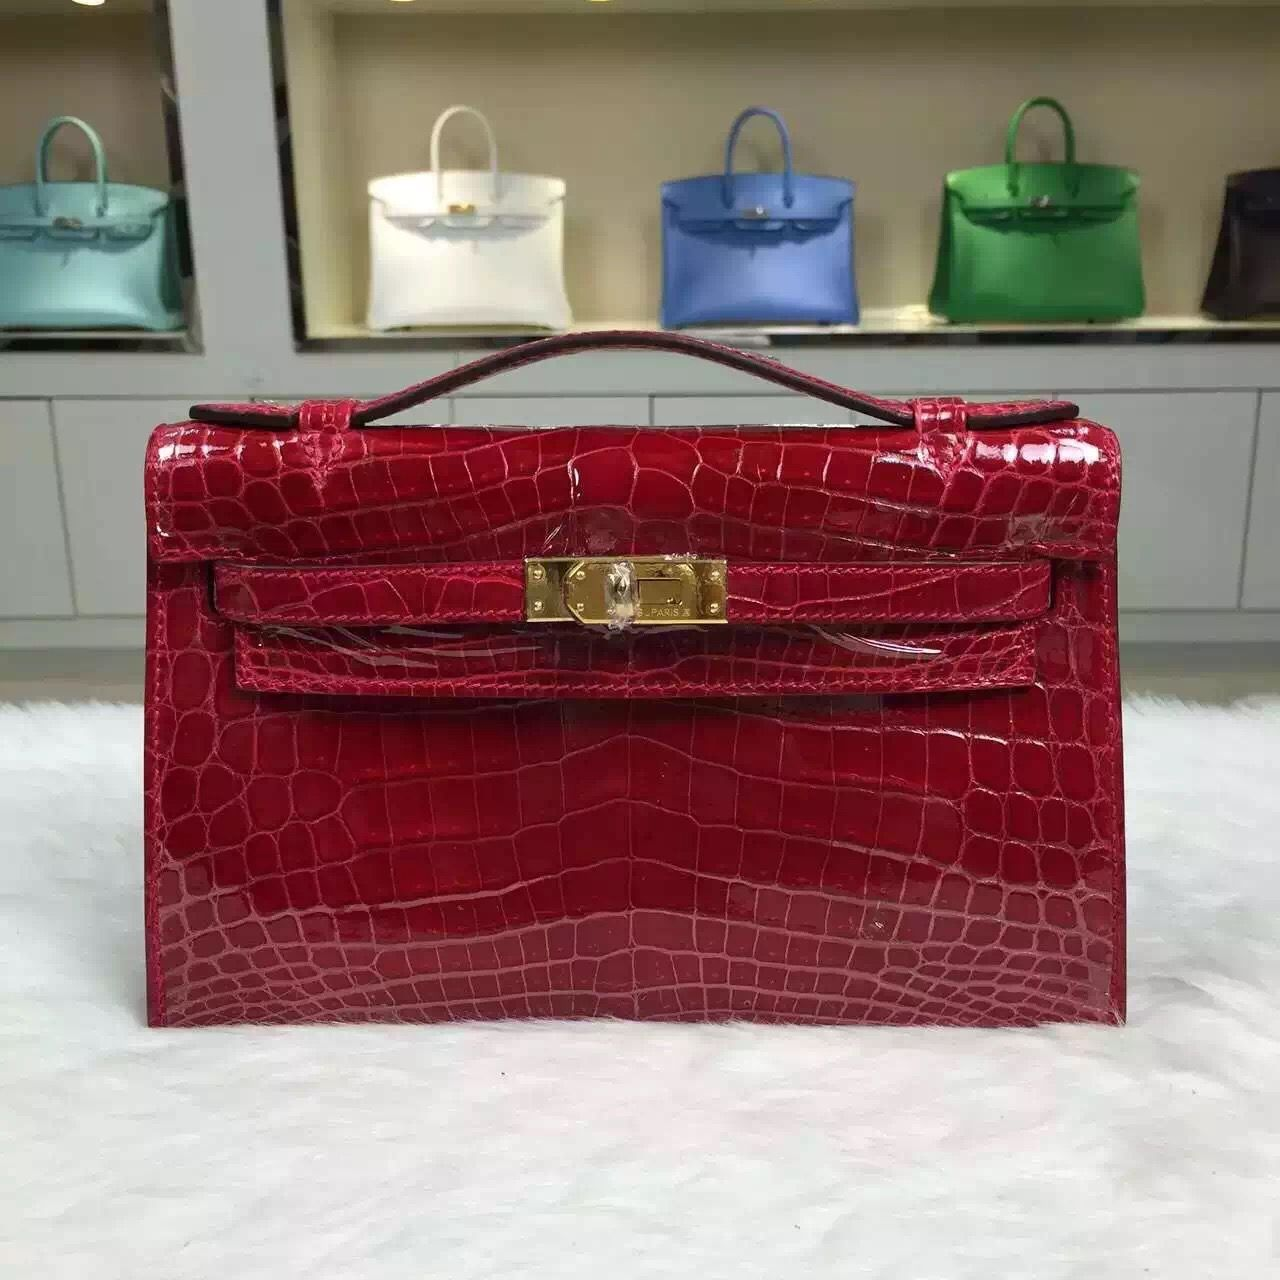 6cbe3ce866 Brand  Hermes  Style  Mini Kelly Pochette  Material  crocodile skin leather  Color Chinese Red  Size 22CM  Hardware  gold silver  Accessories  Padlock  and ...